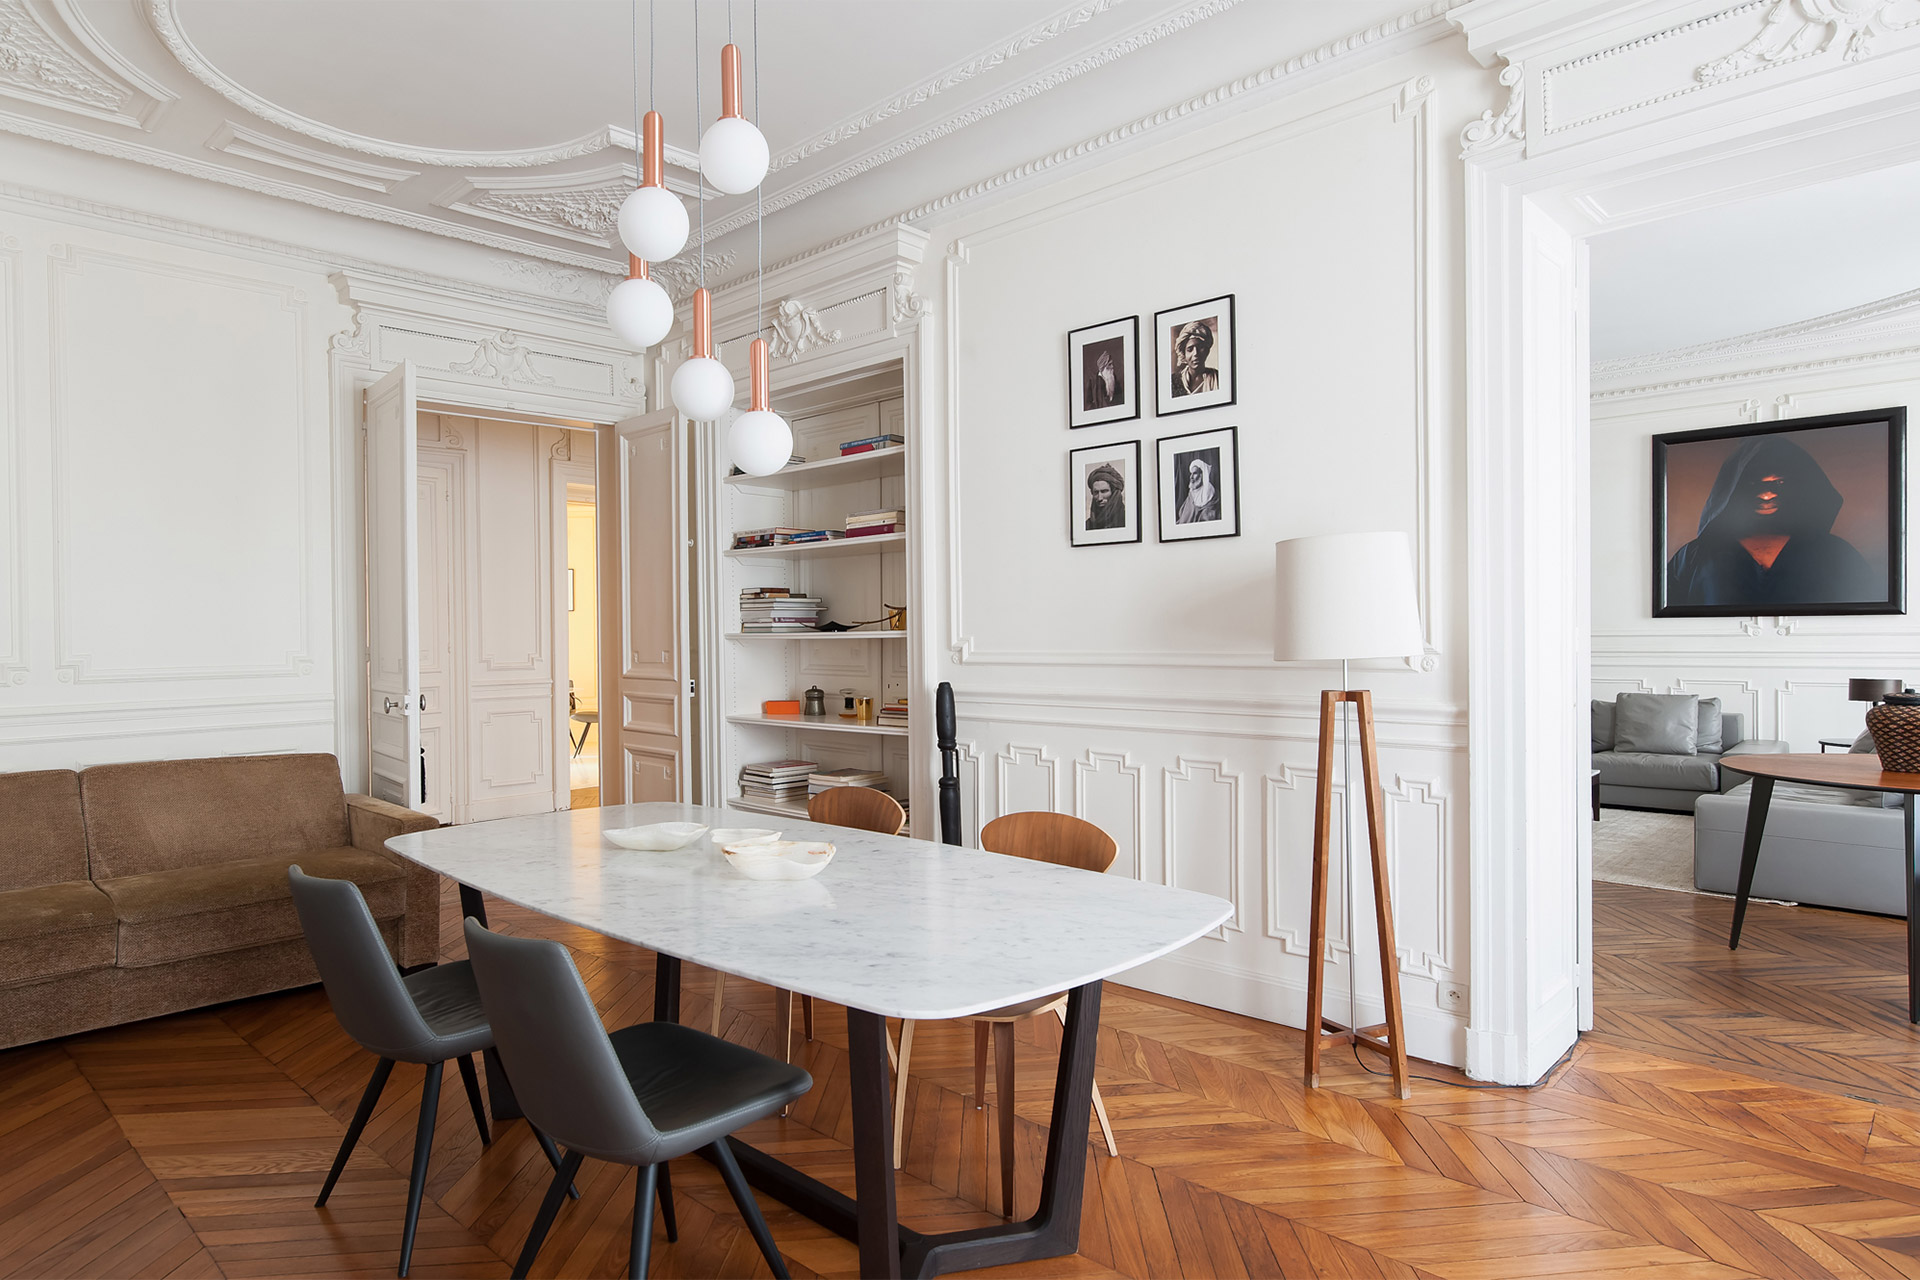 Impress your guests with dinners around this chic table in the Cavailles Paris rental